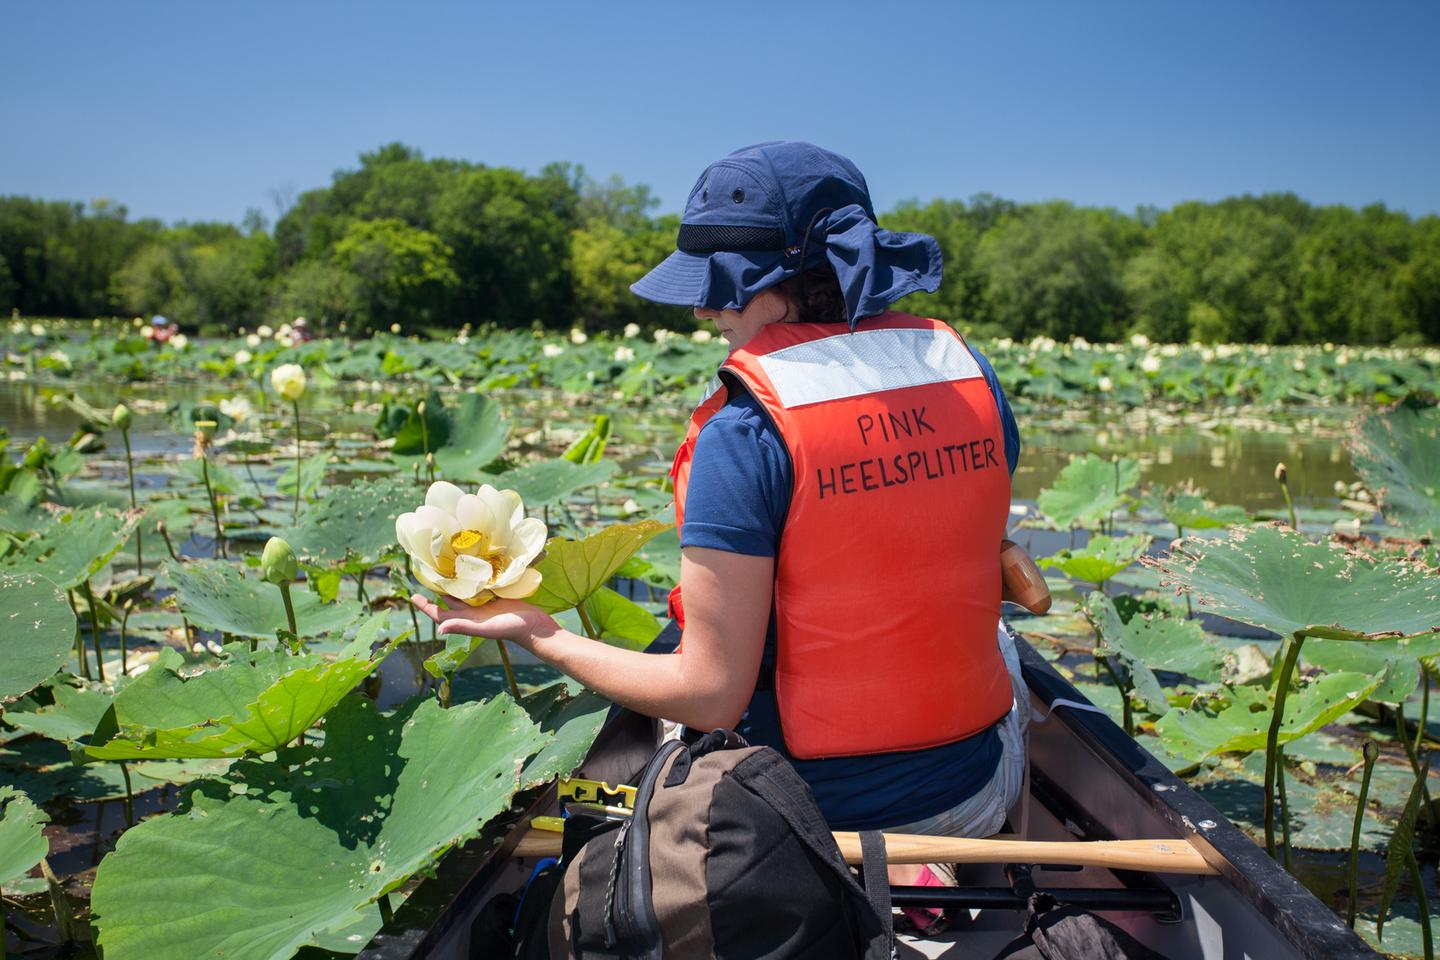 Canoeing through Lotus BlossomsLotus beds bloom in the backwaters of the Mississippi National River and Recreation Area and provide canoeists an unexpected visual treat.